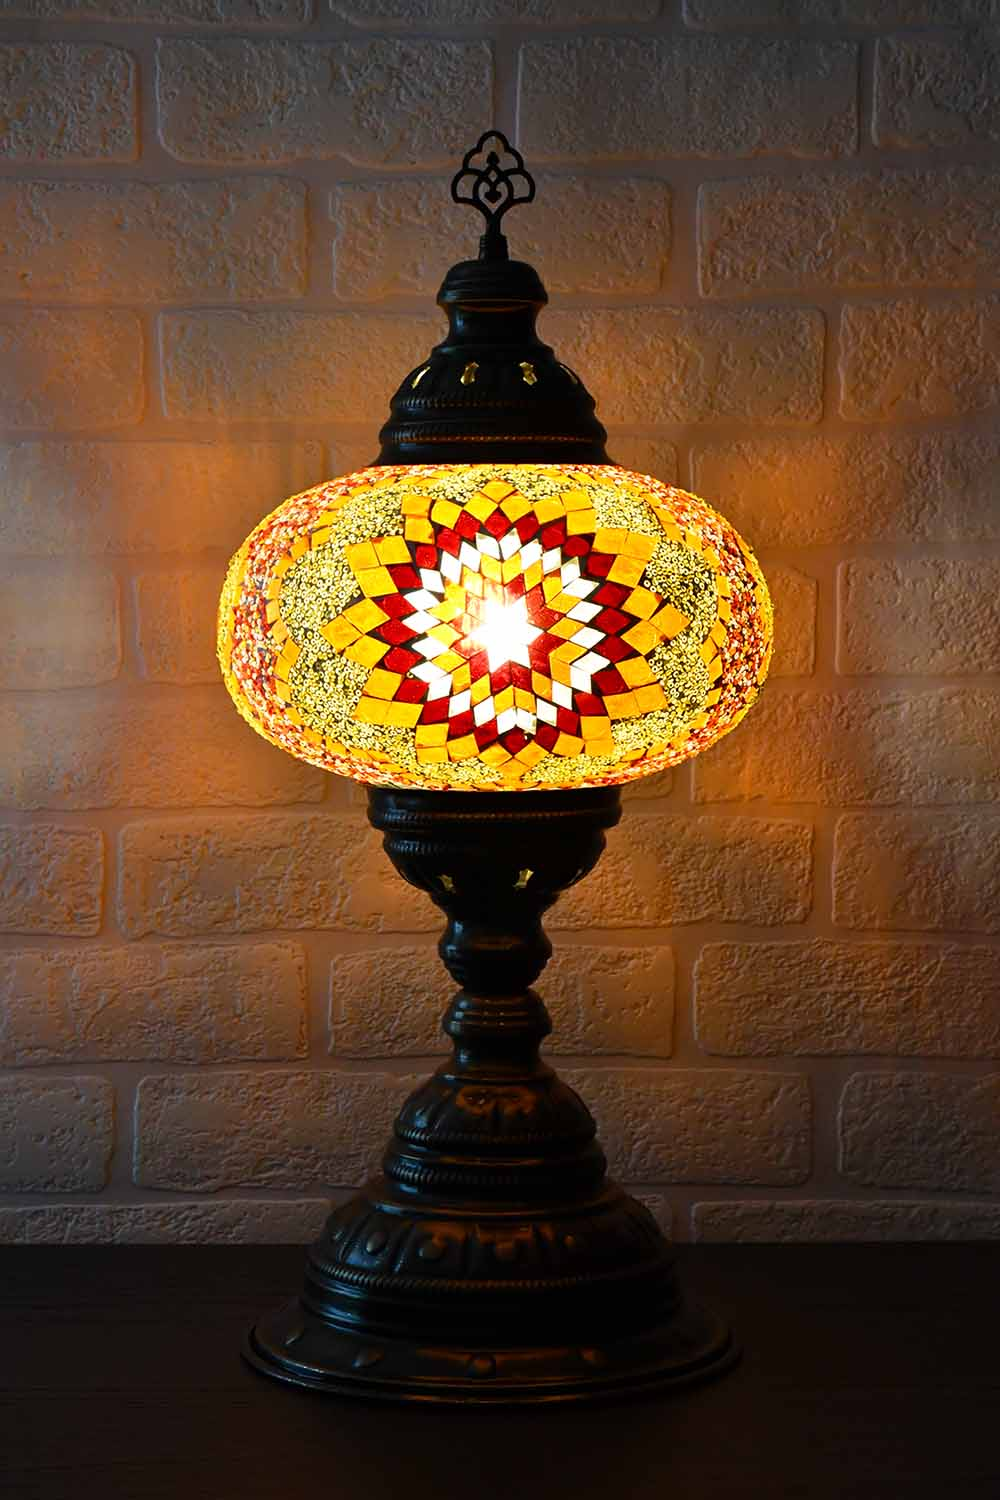 Turkish Table Lamp Large Orange Yellow Star Beads Lighting Sydney Grand Bazaar